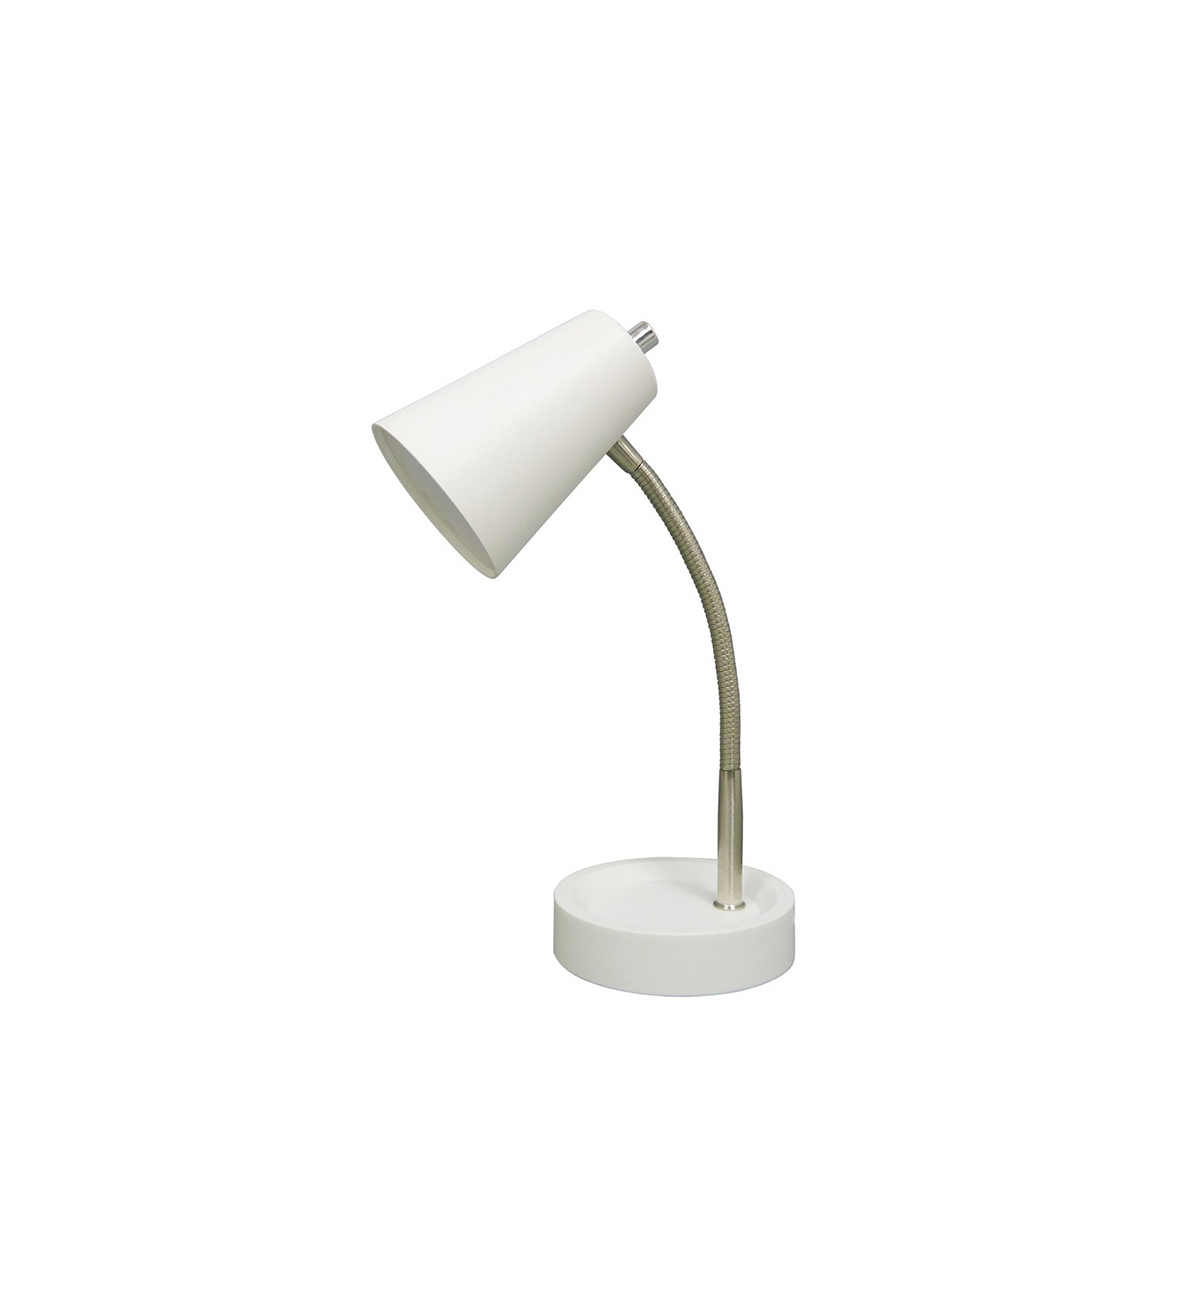 Dorm Room Decor Small White Desk Lamp